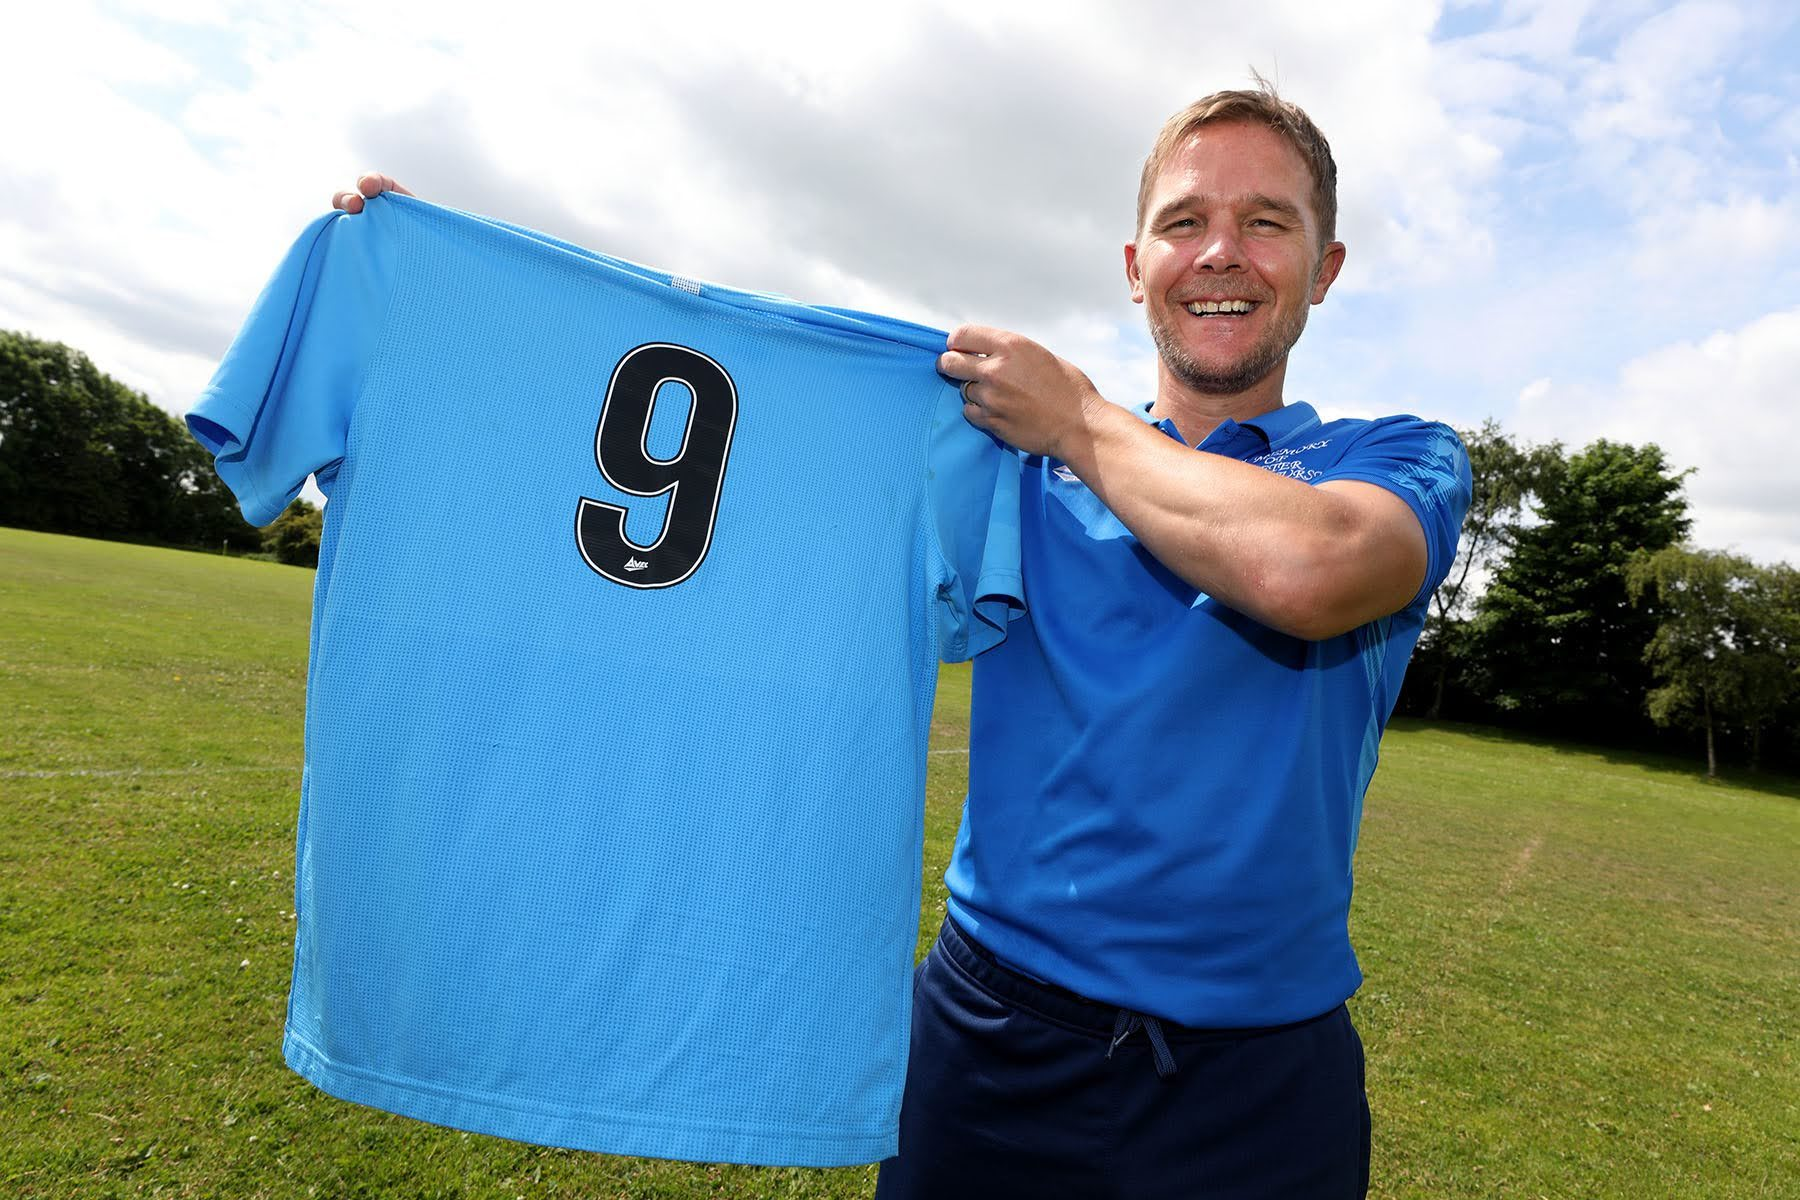 County Durham defender scores NINE to win football league